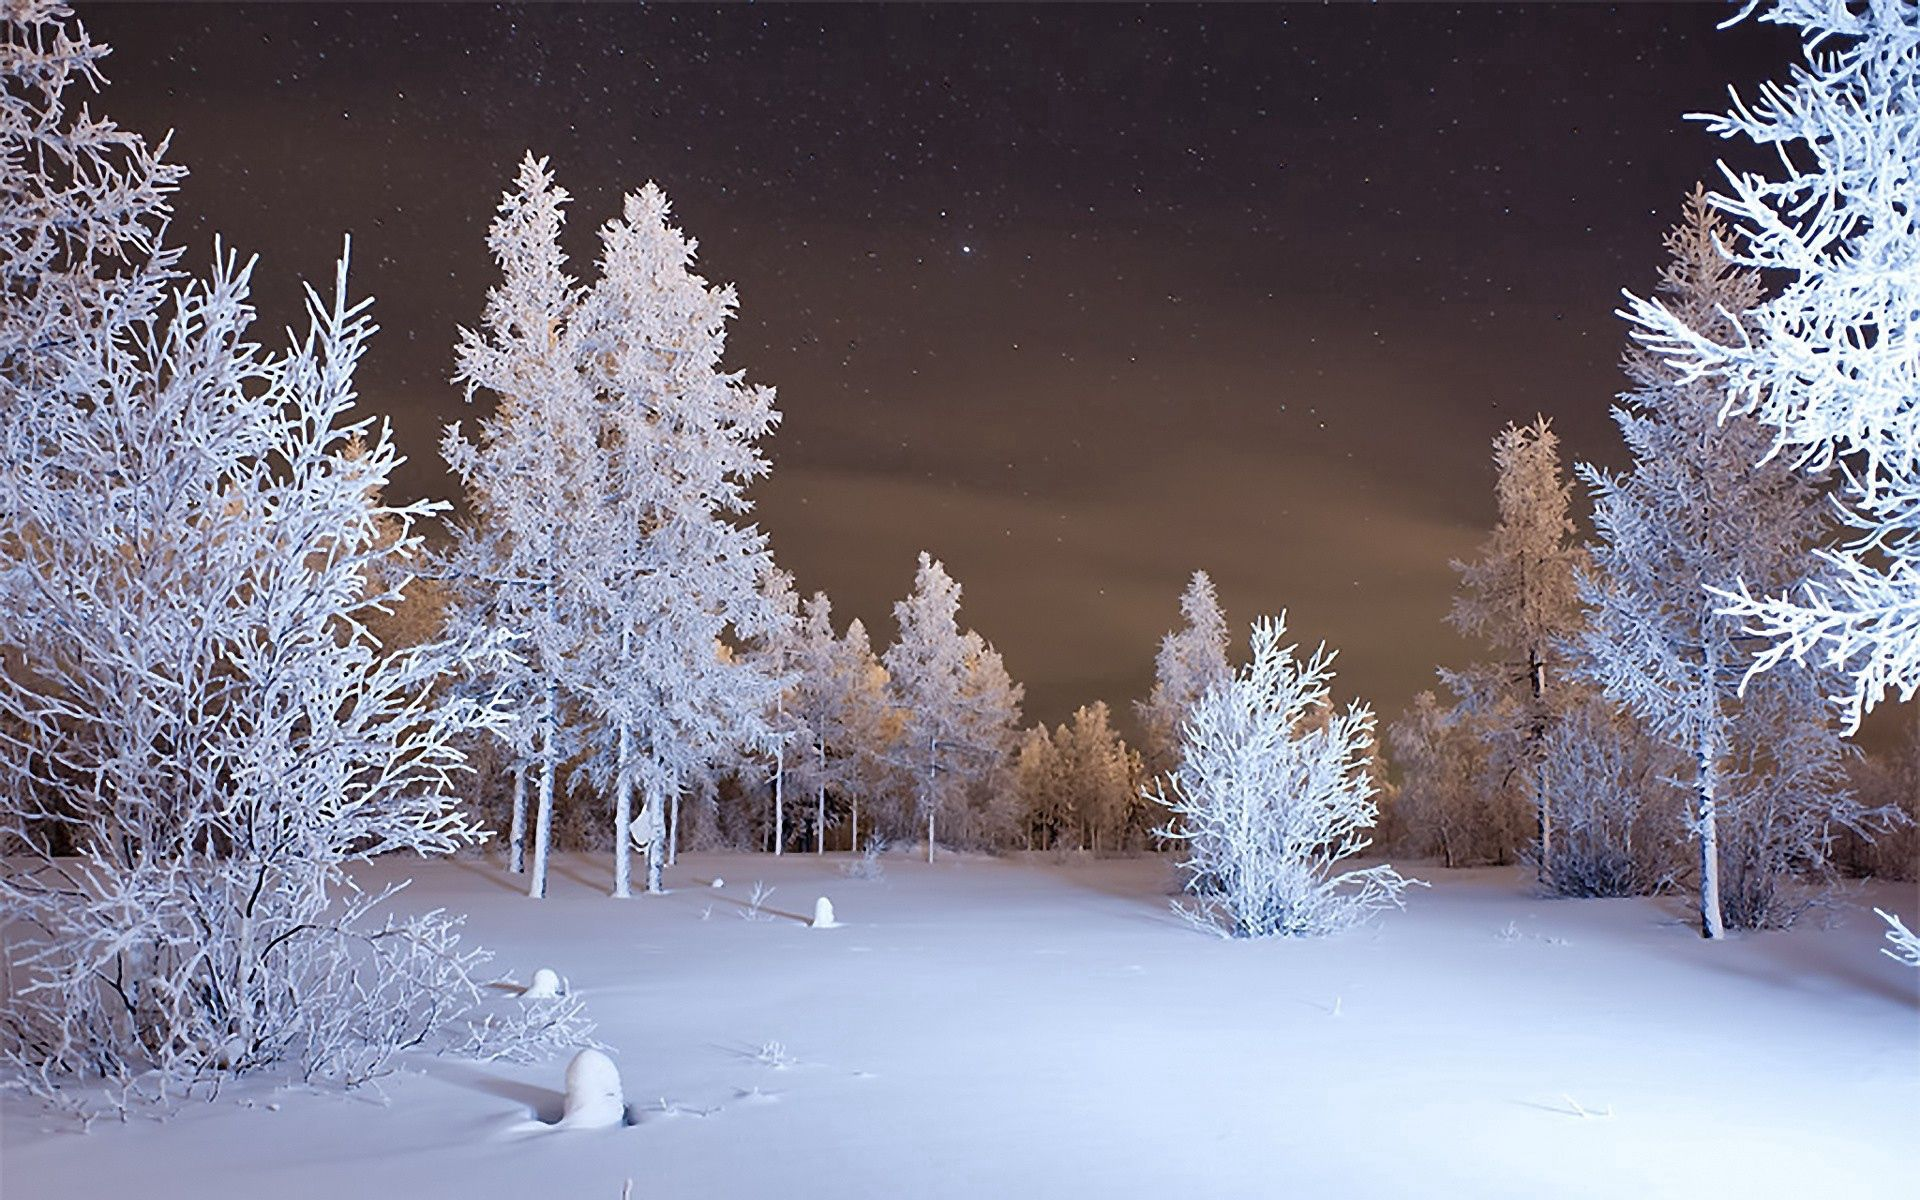 83550 download wallpaper Snow, Winter, Nature, Forest screensavers and pictures for free